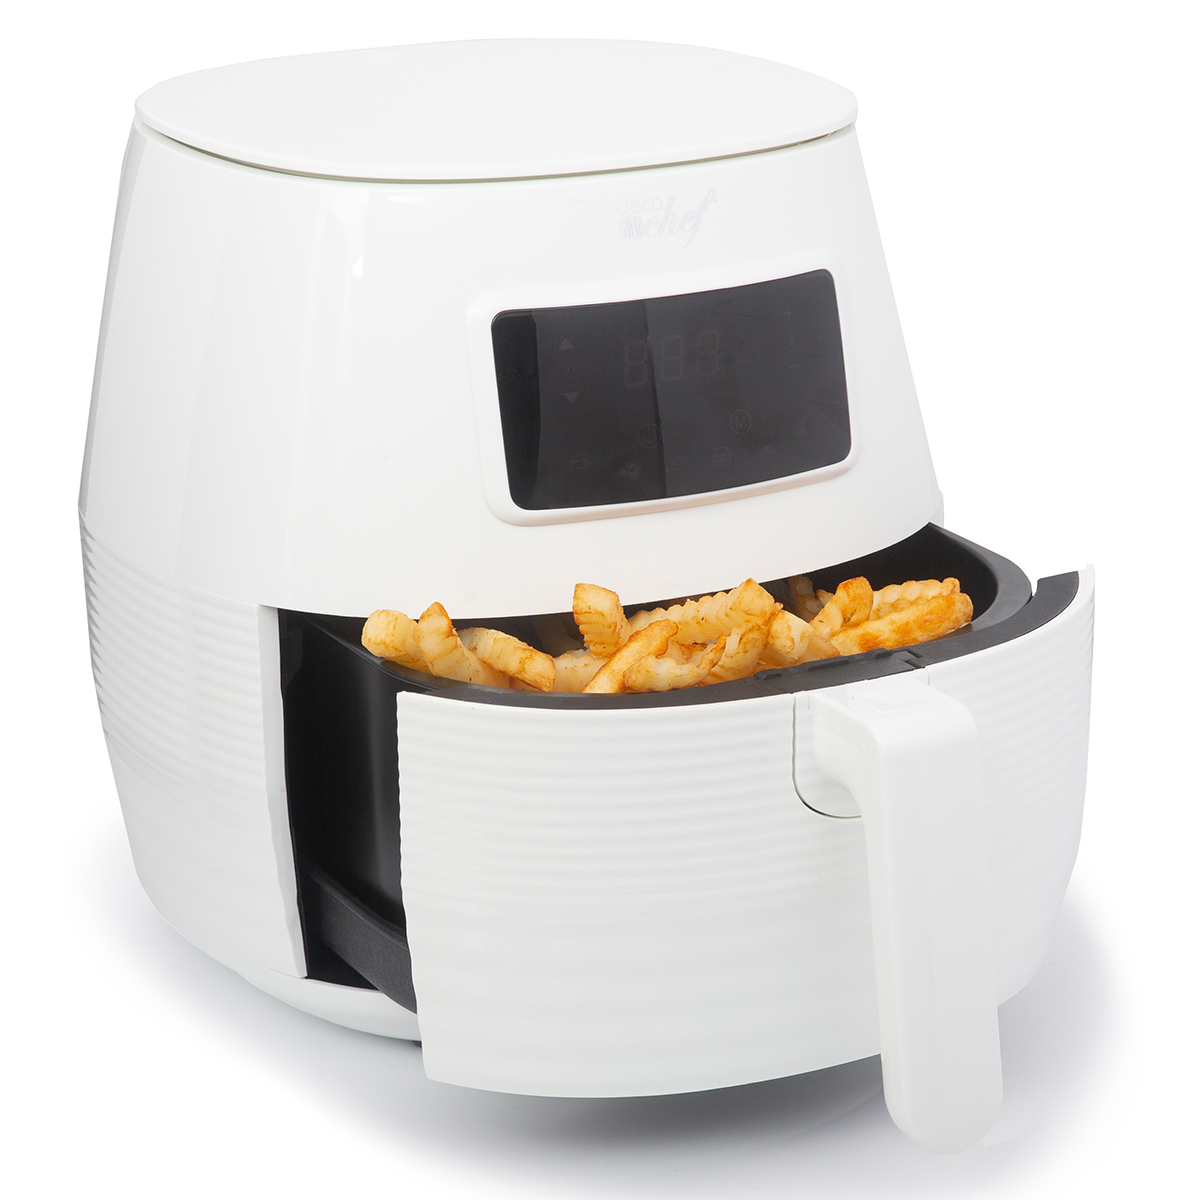 Deco-Chef-5-8QT-1400W-Digital-Electric-No-Oil-Air-Fryer-6-Cooking-Presets-Timer thumbnail 22